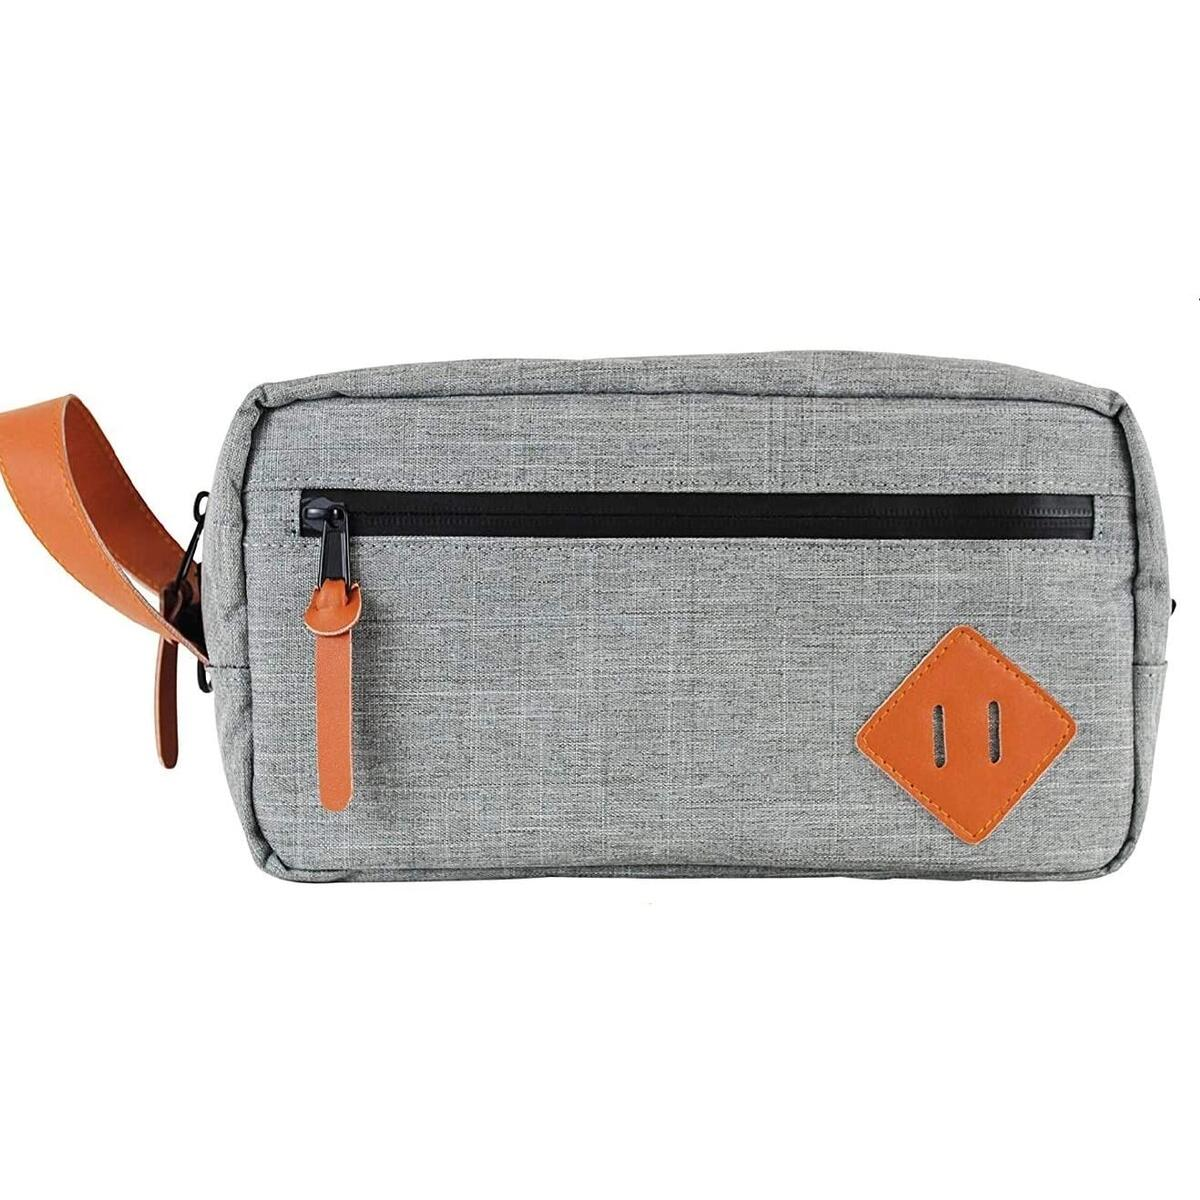 MUSK BOX Smell Proof bag | odorless travel toiletry pouch scentless water resistant carbon lined with free scent locking mylar baggies…